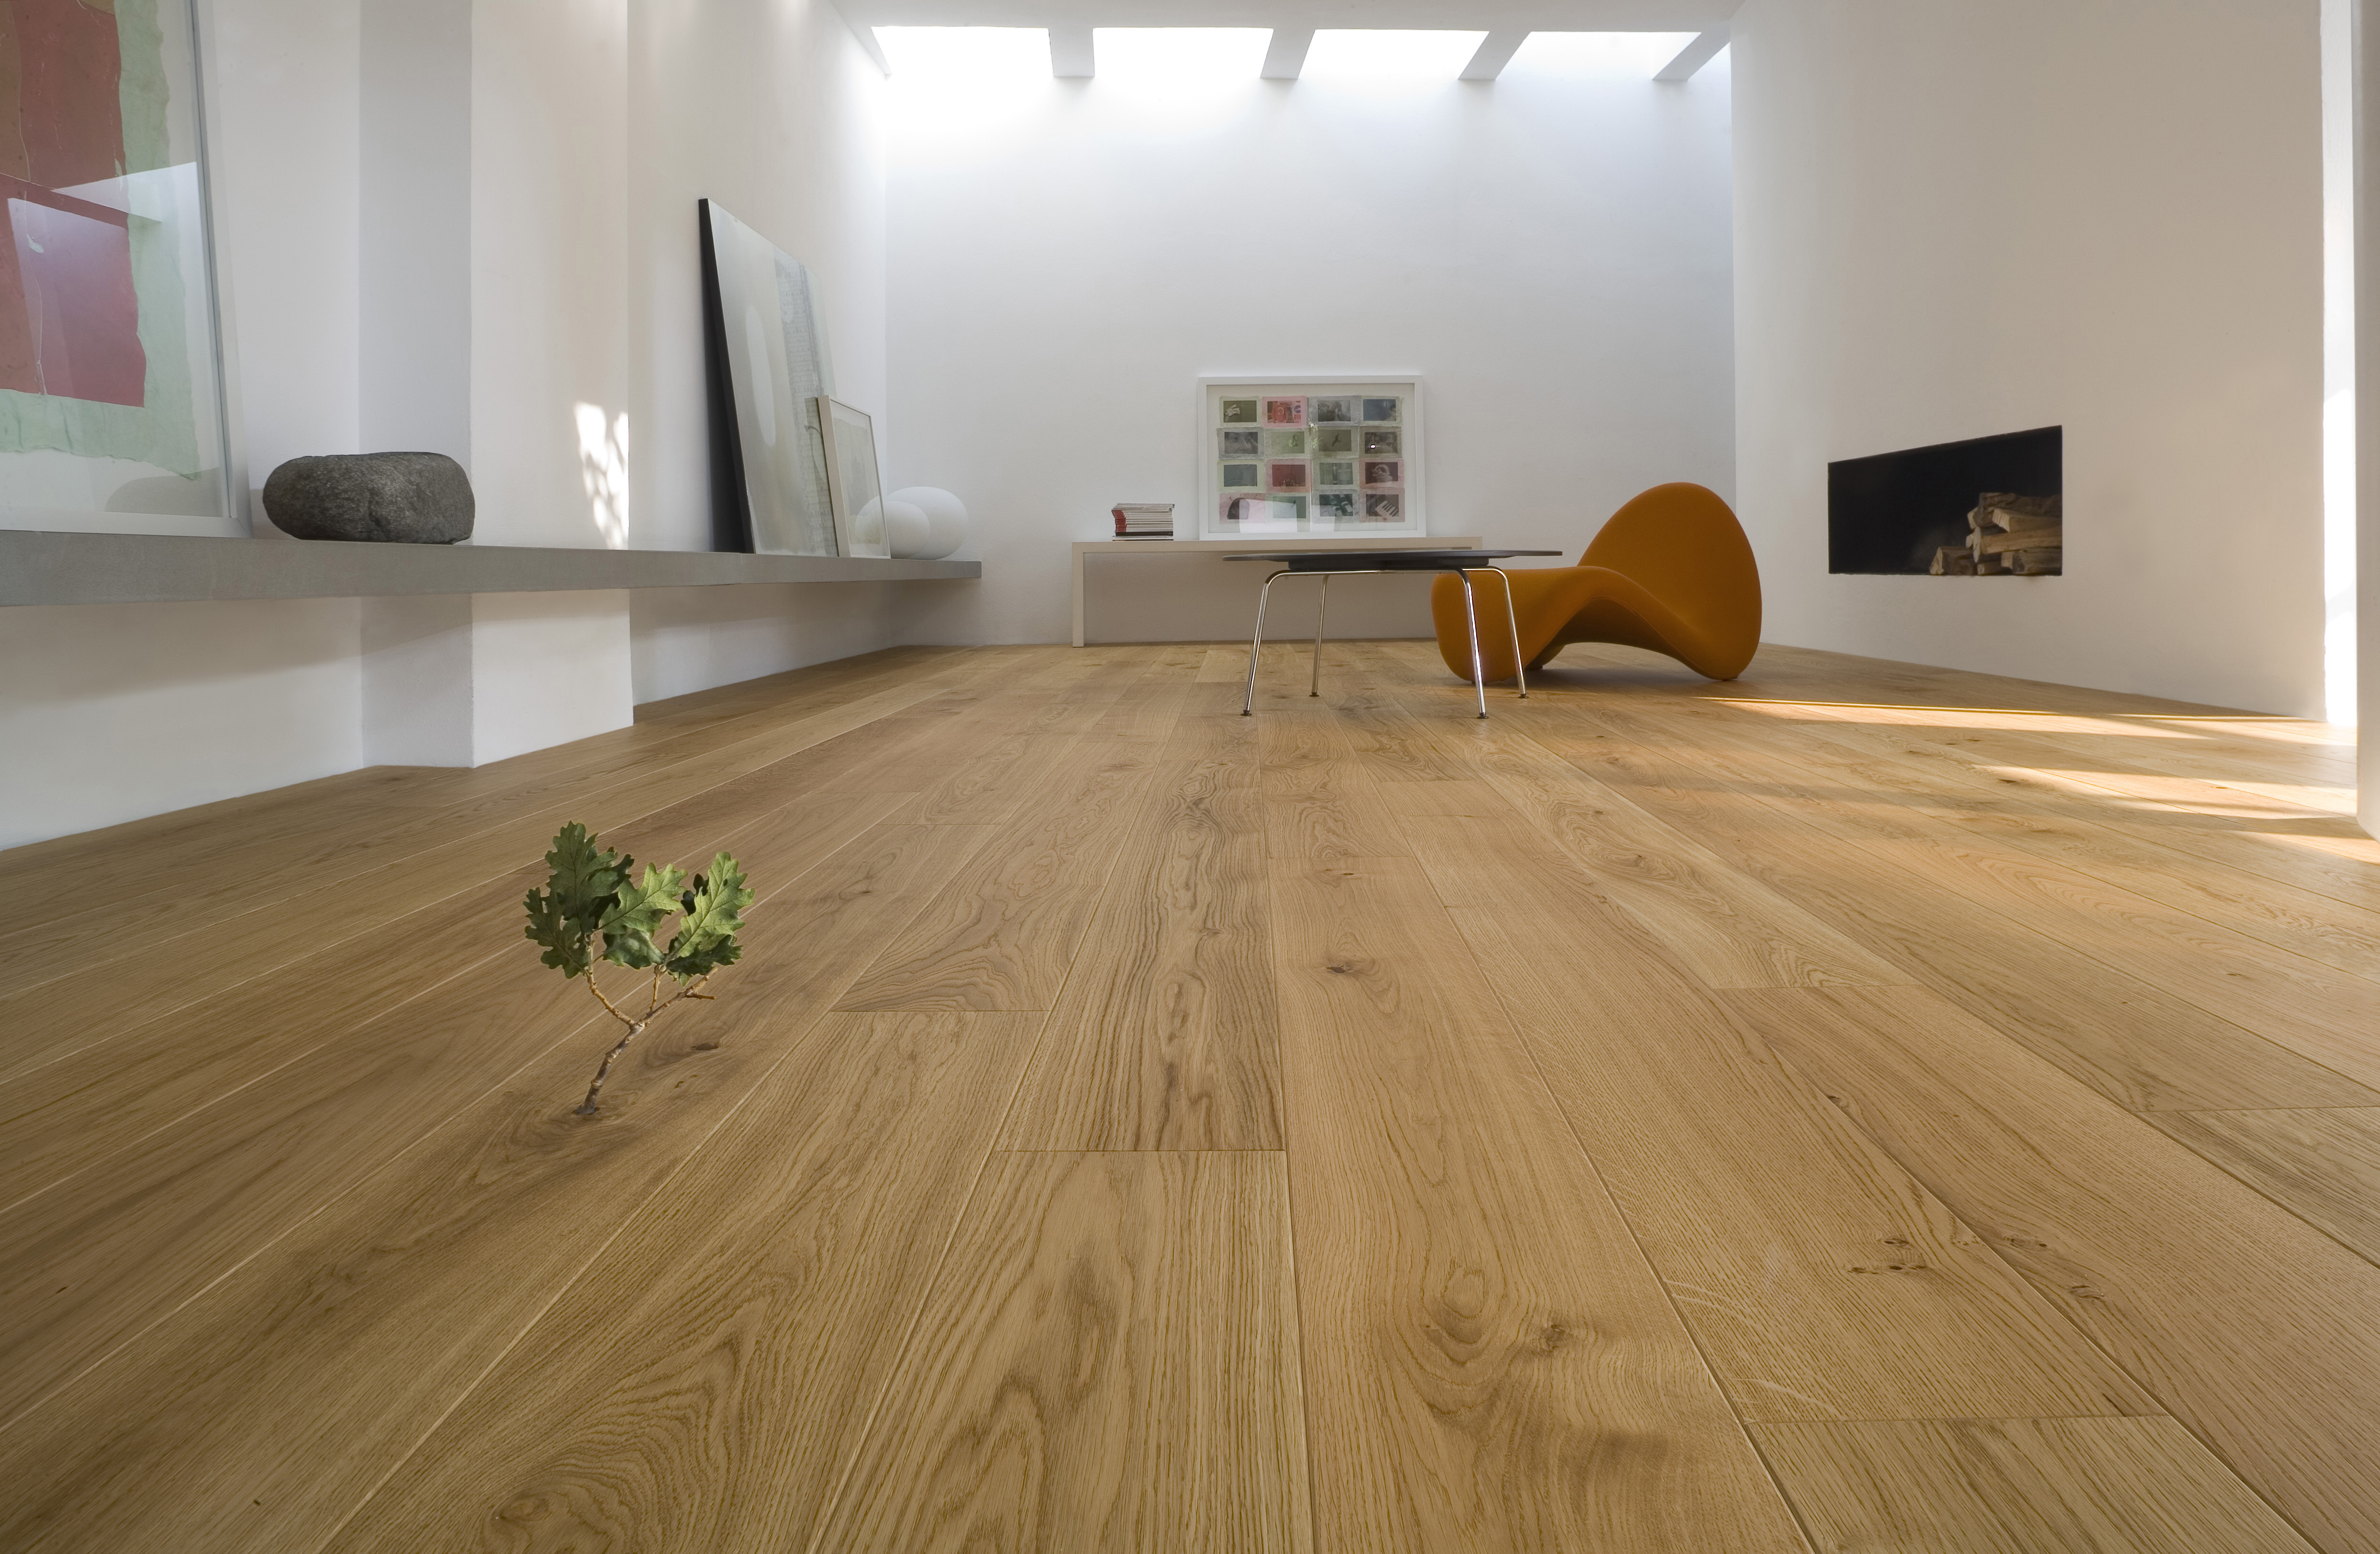 The most natural wooden hand levantina parquet and bona - Suelo de madera ...